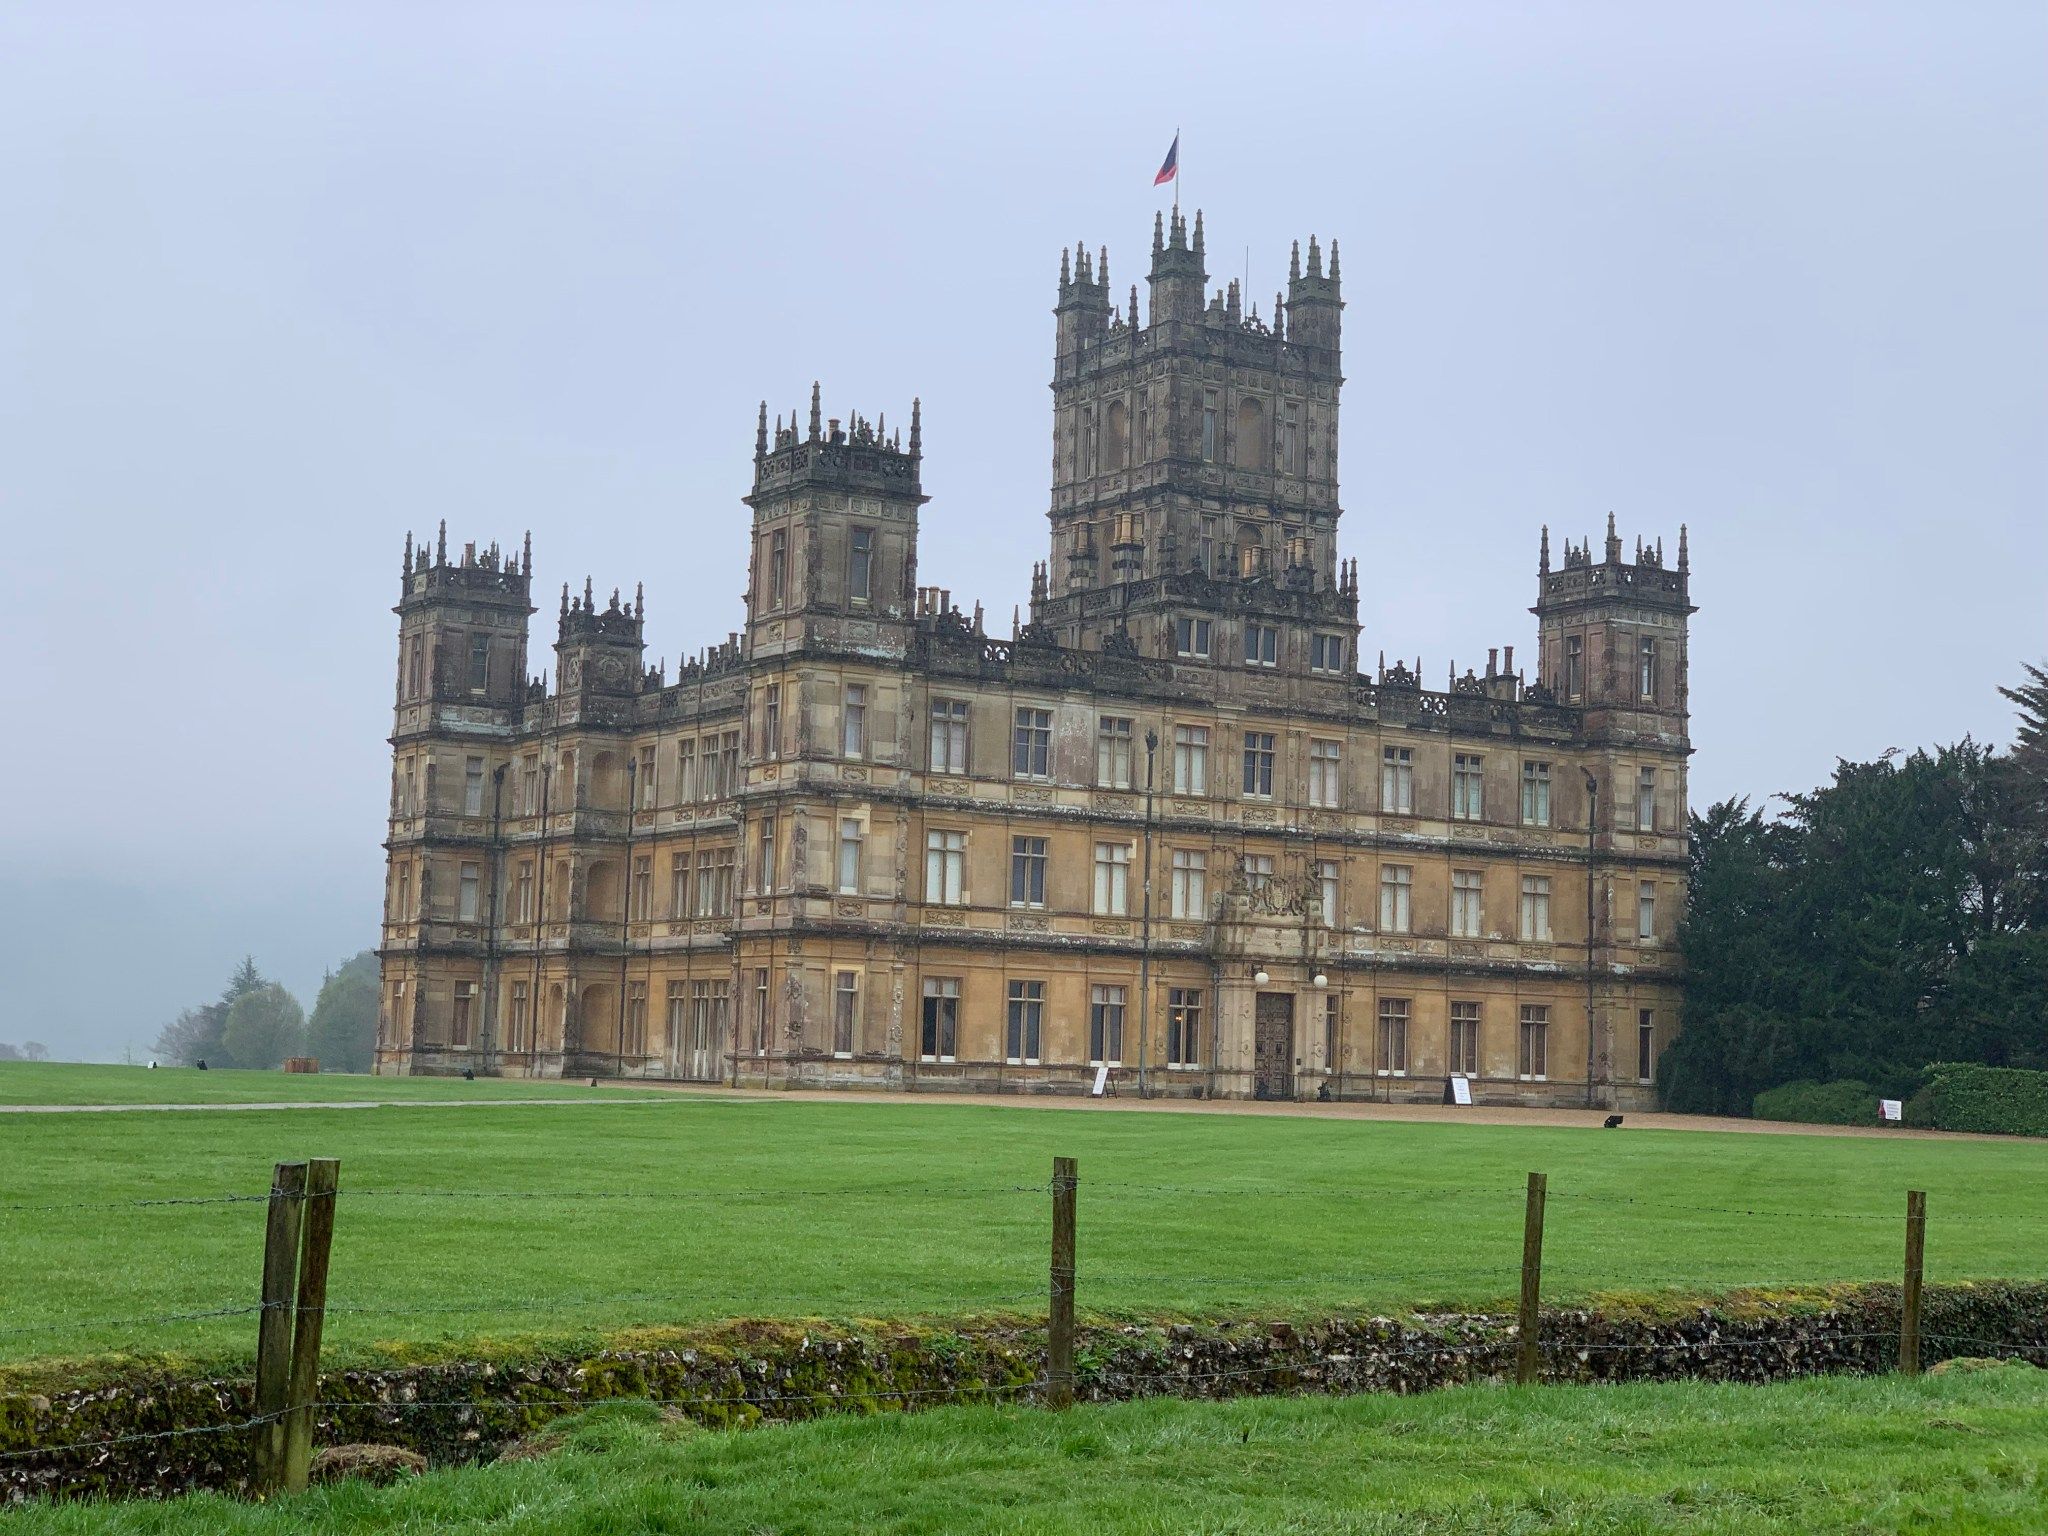 Highclere Castle on a cloudy day